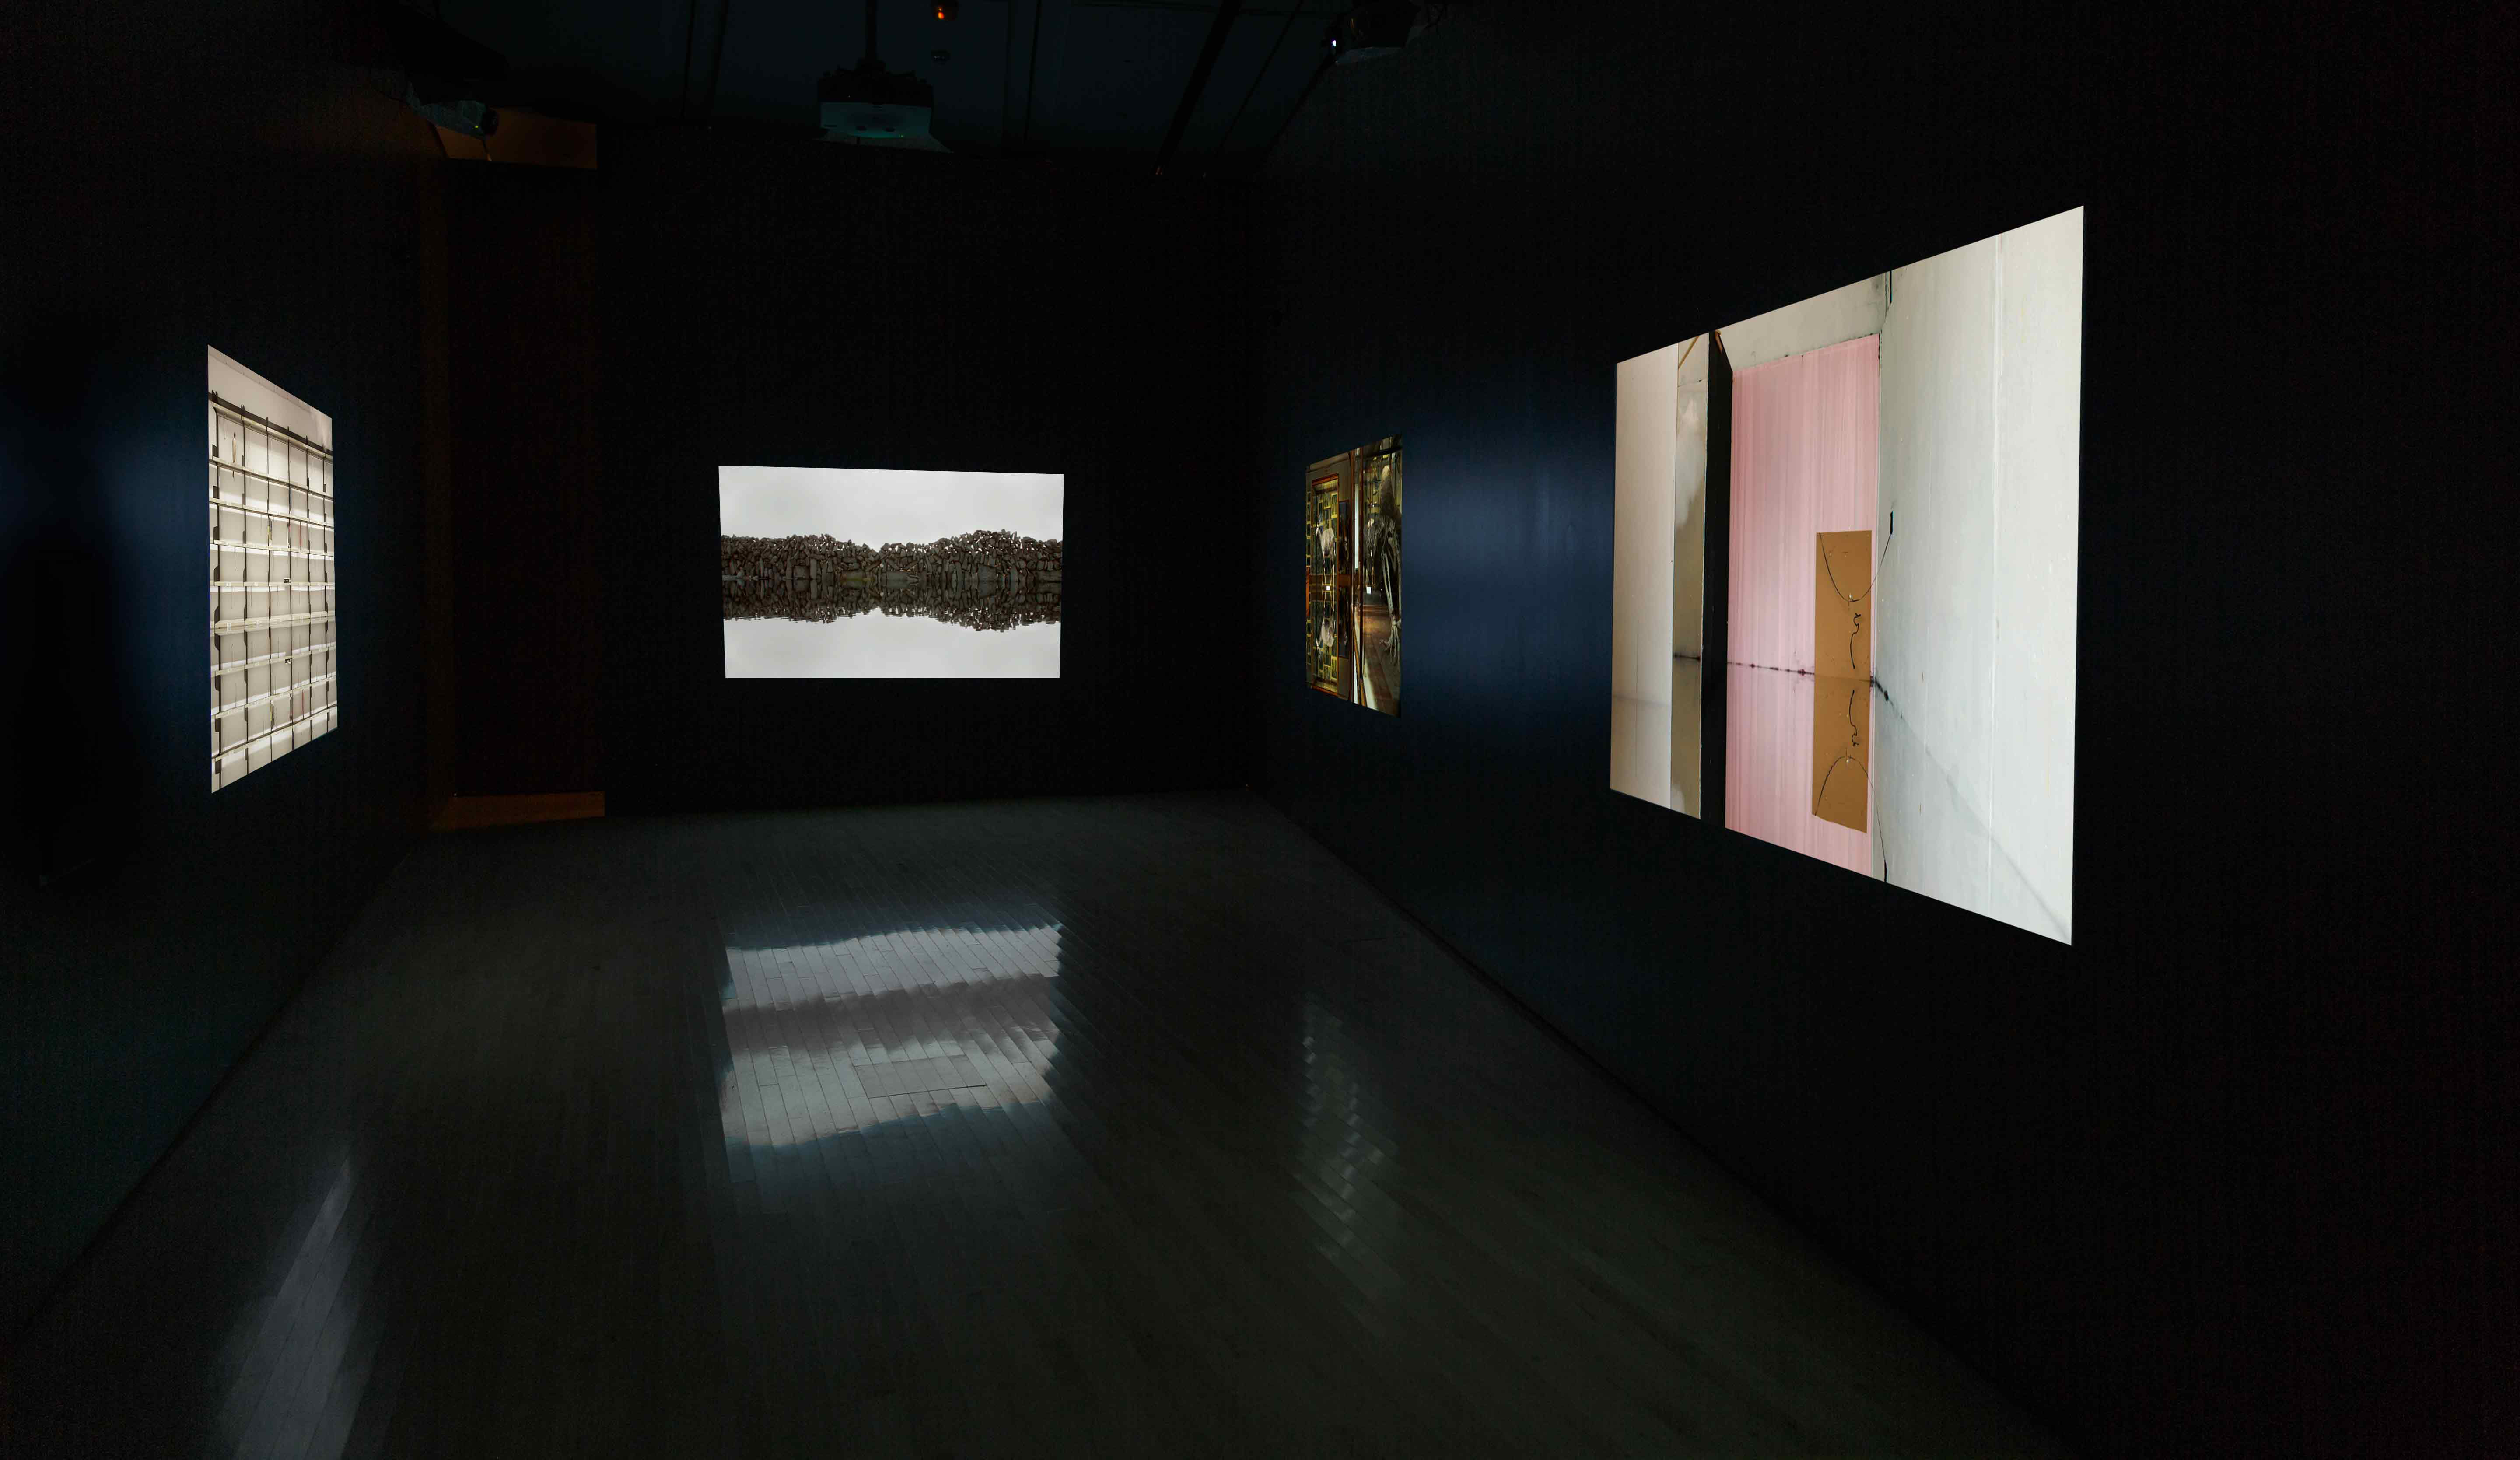 2116 - Forecast of the next century, Eli & Edyth Broad Art Museum, Michigan, USA, 2016/17. Curated by Caitlin Doherty, Fiona Kearney & Chris Clarke.